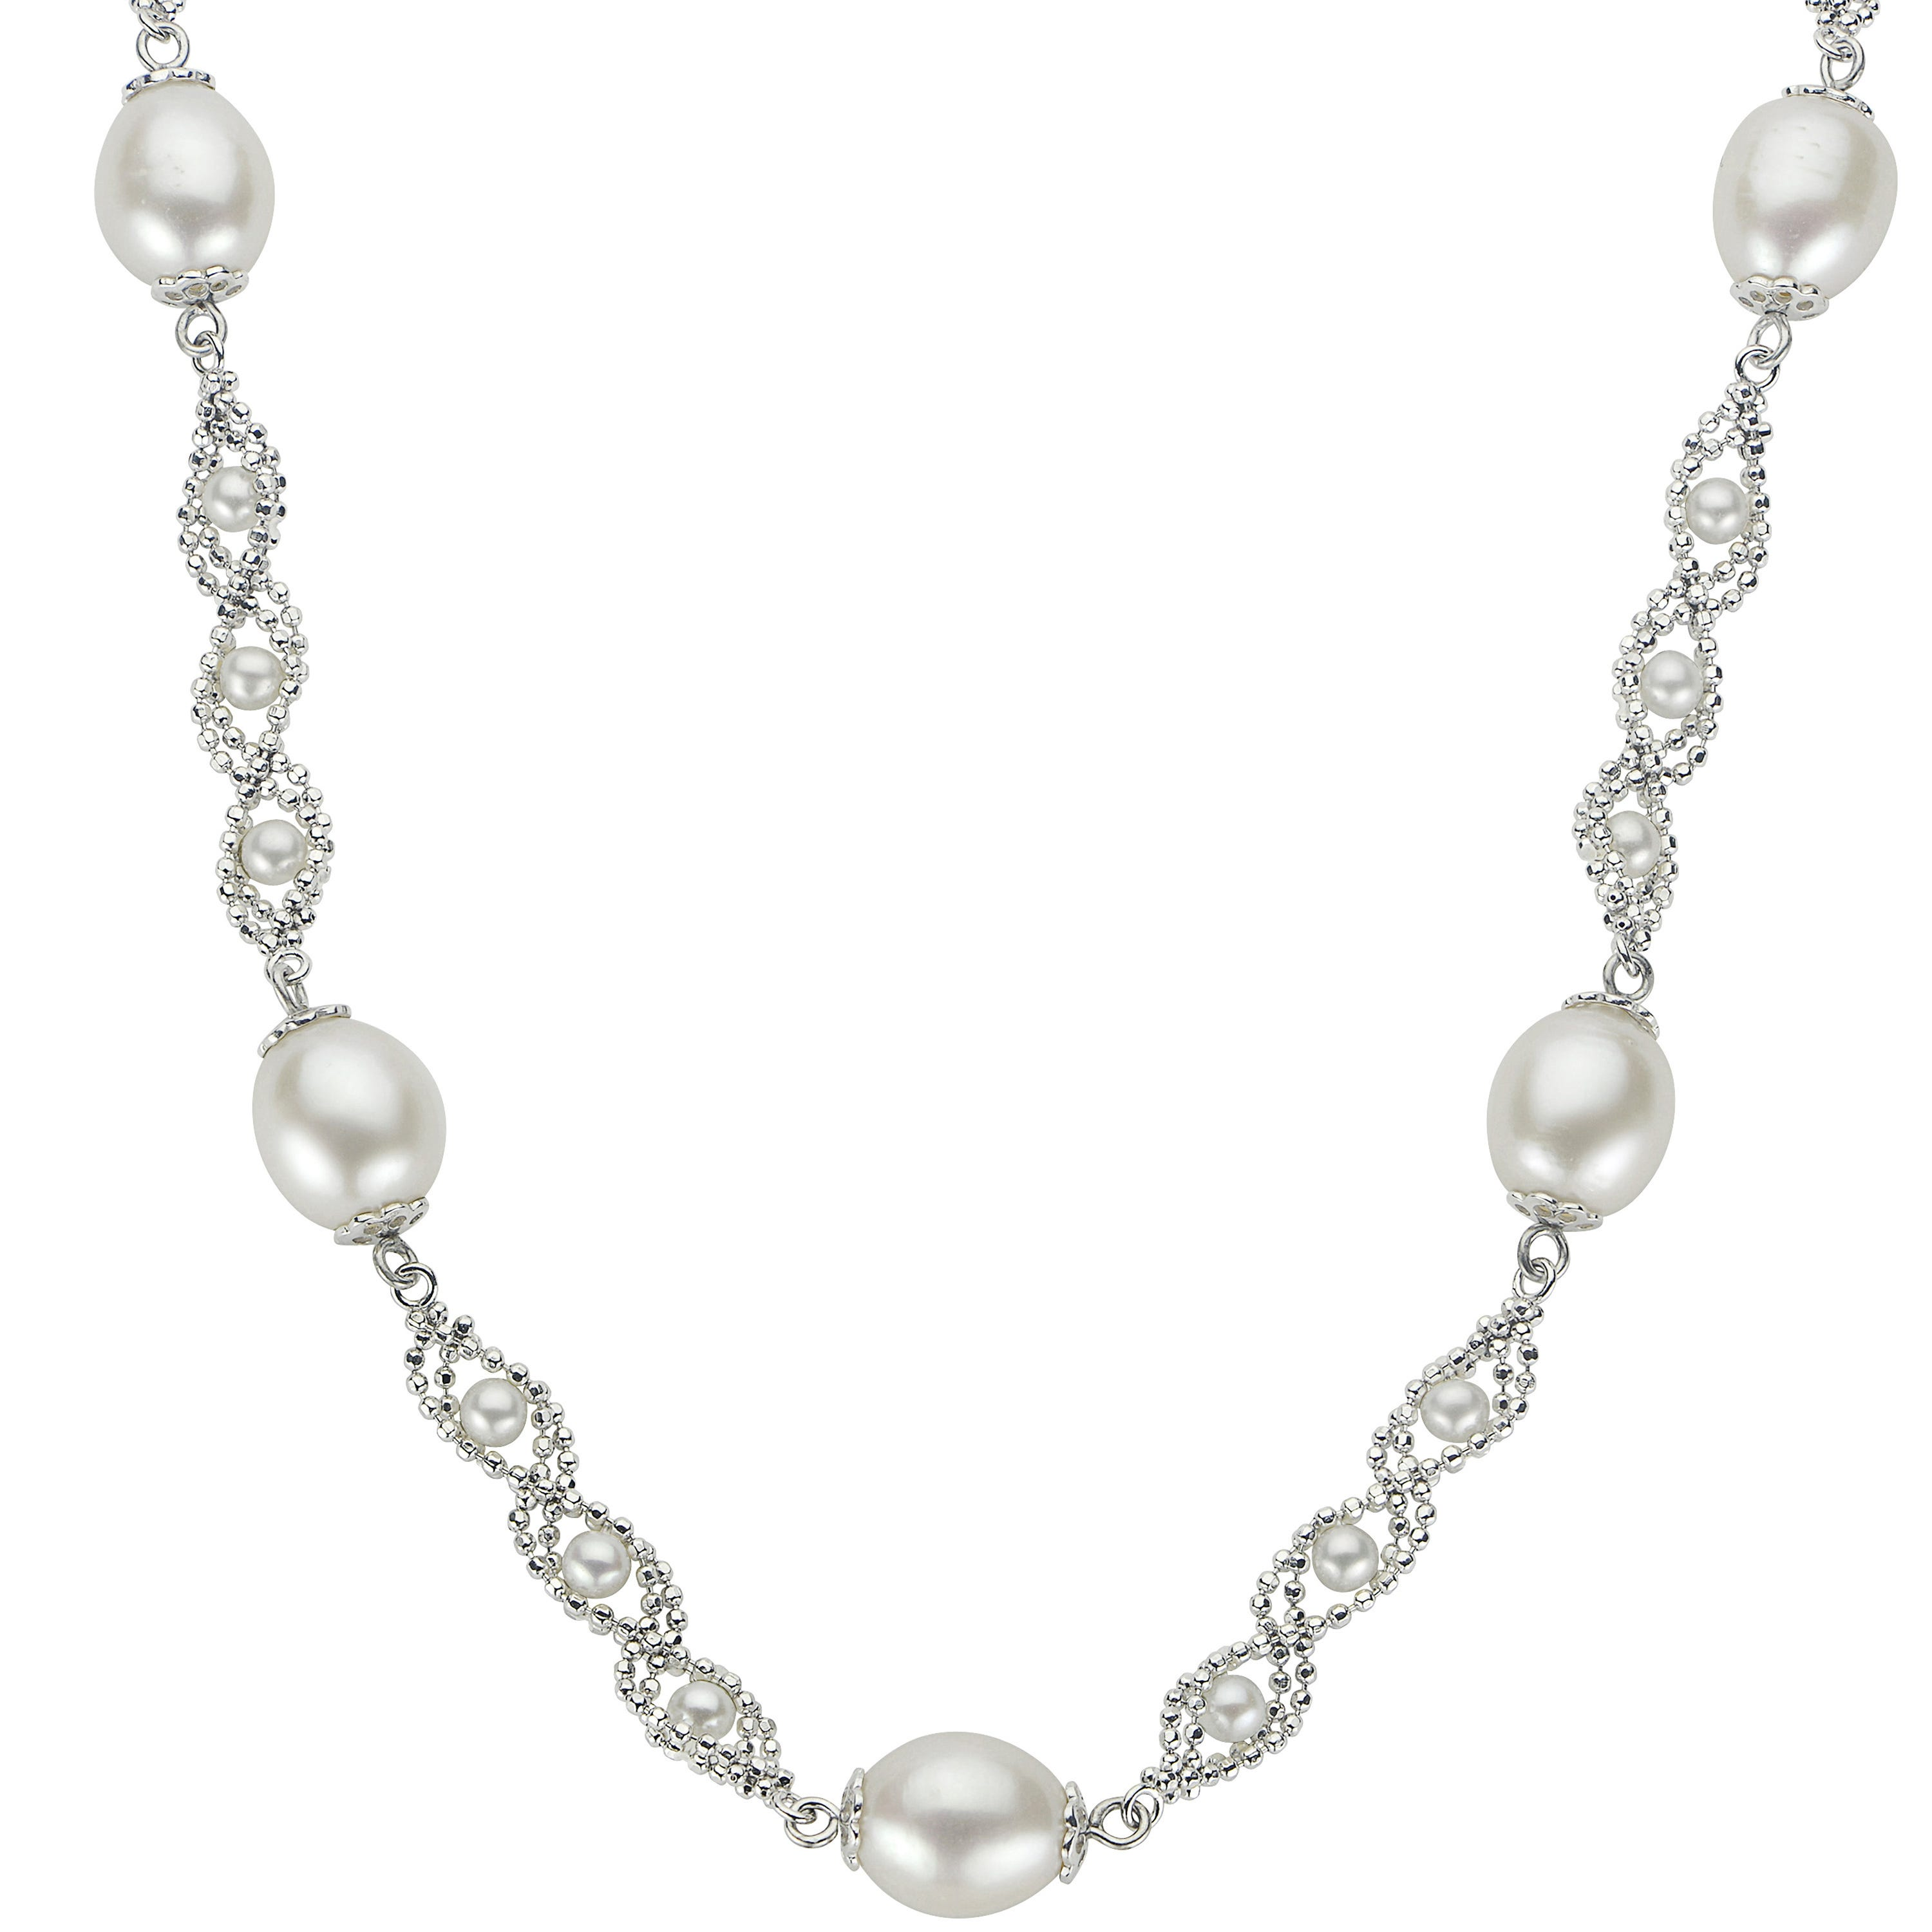 Imperial Pearl Lace-Twist Design Freshwater Pearl Necklace